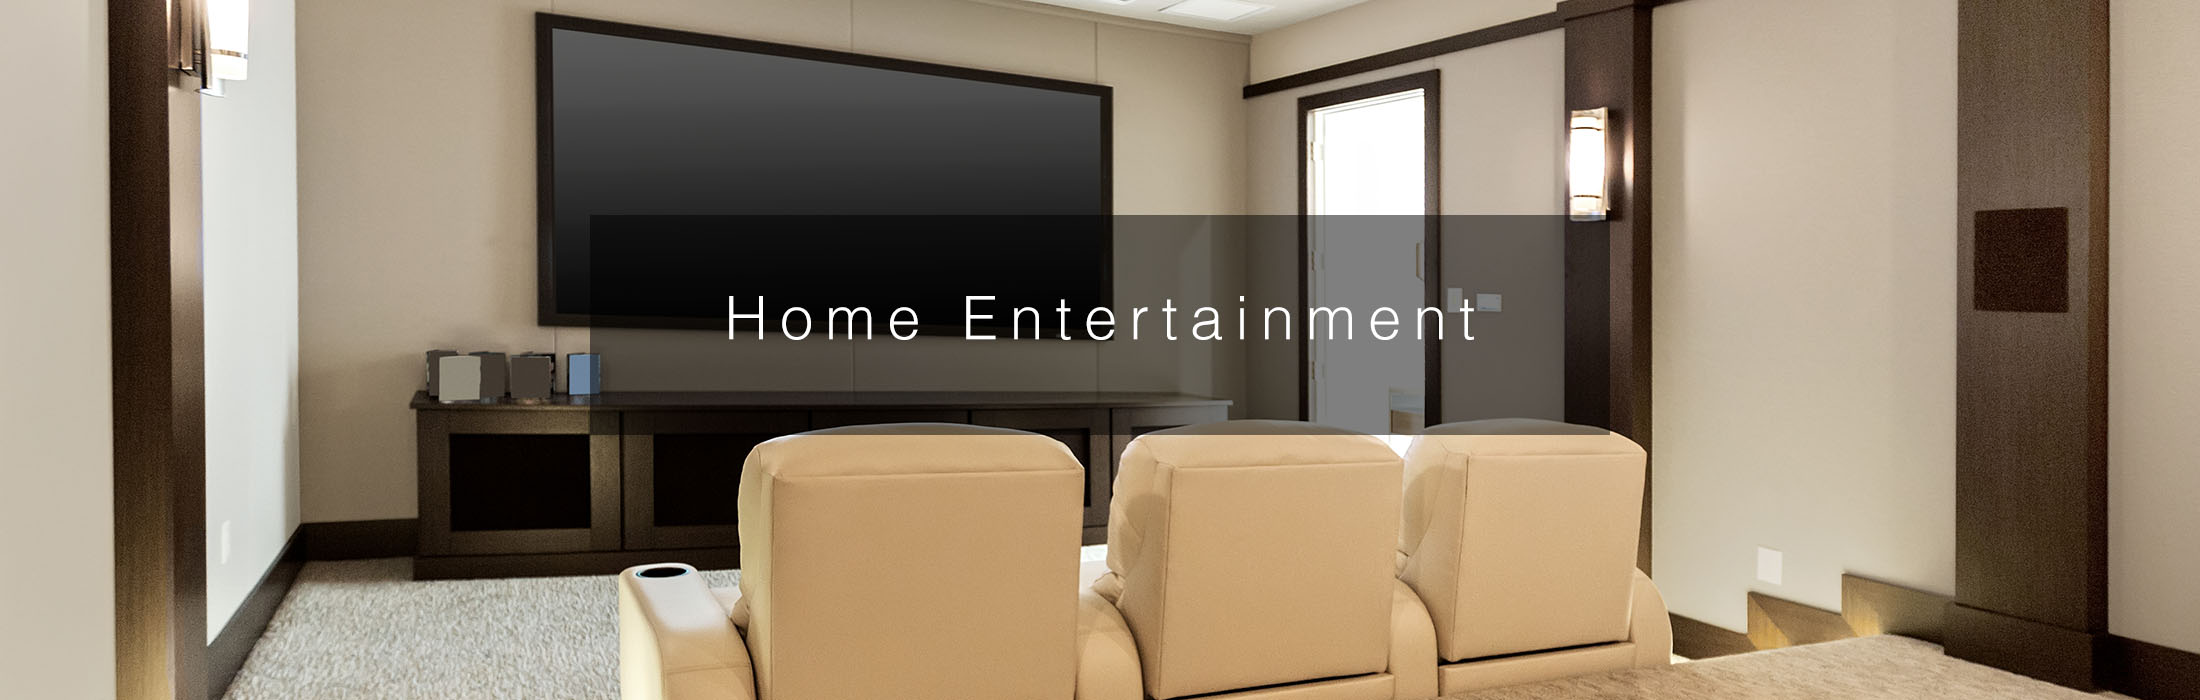 Solutions Home Entertainment Audio Video Intelligence Wiring Your For Music Smart Automation